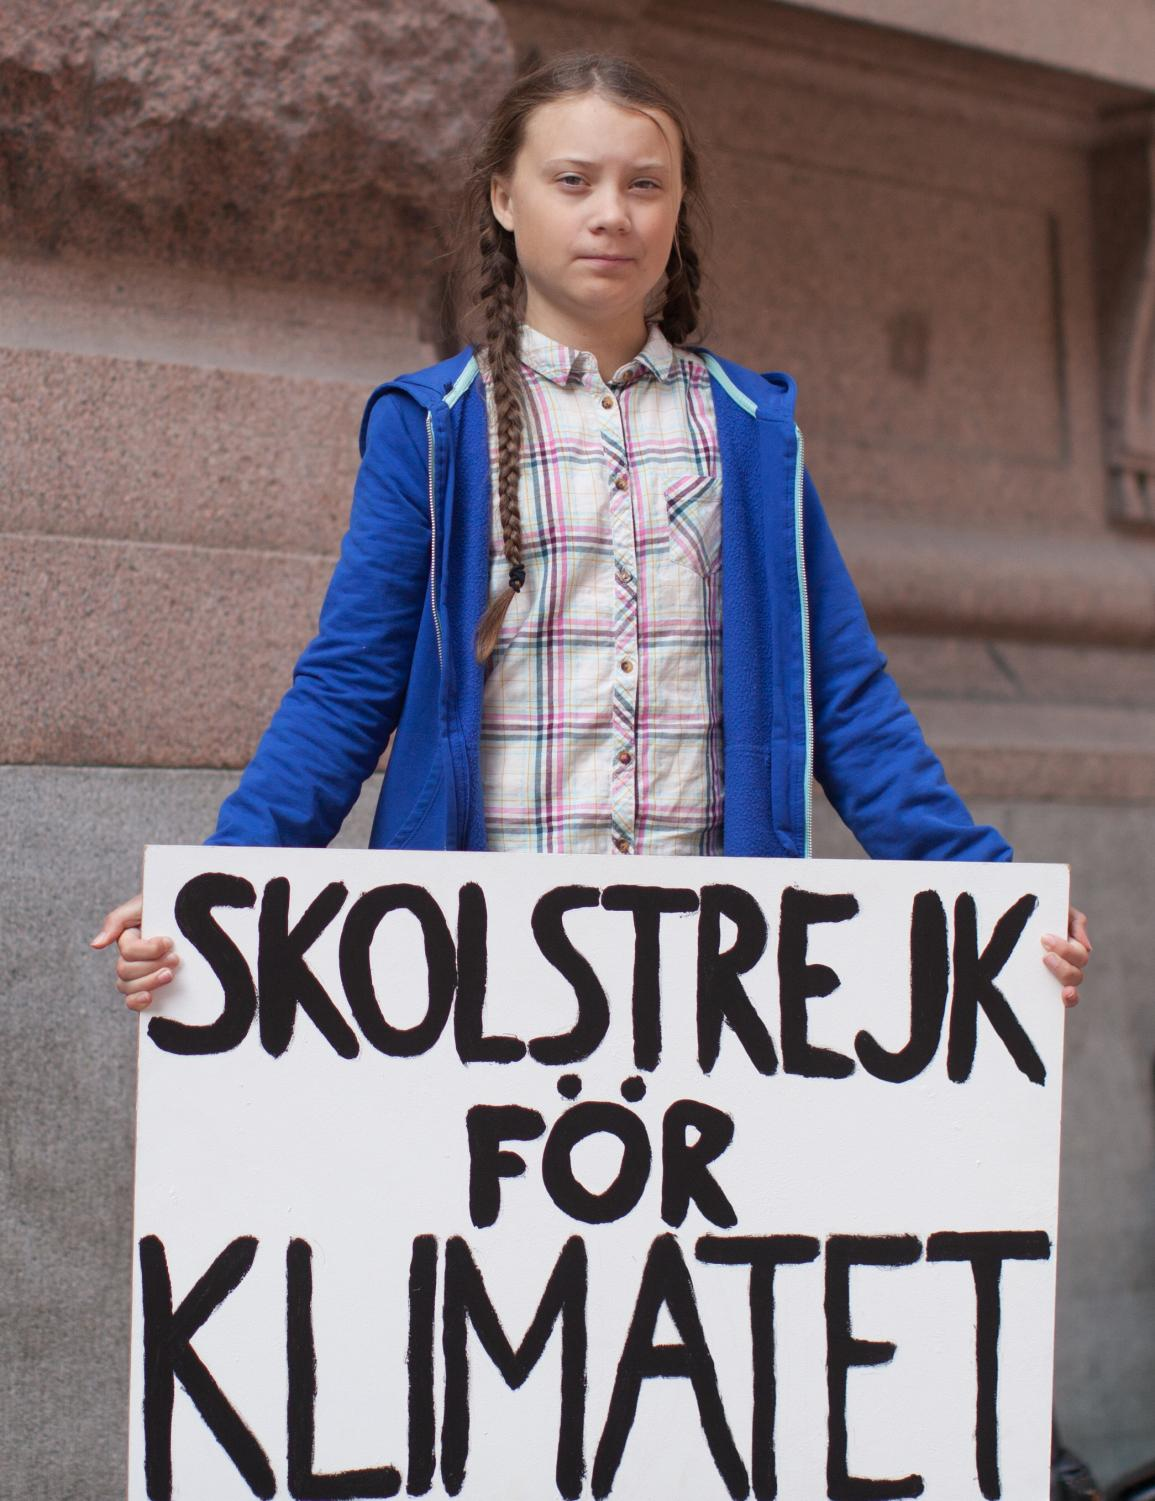 Greta Thunburg with her famous sign, which translates to